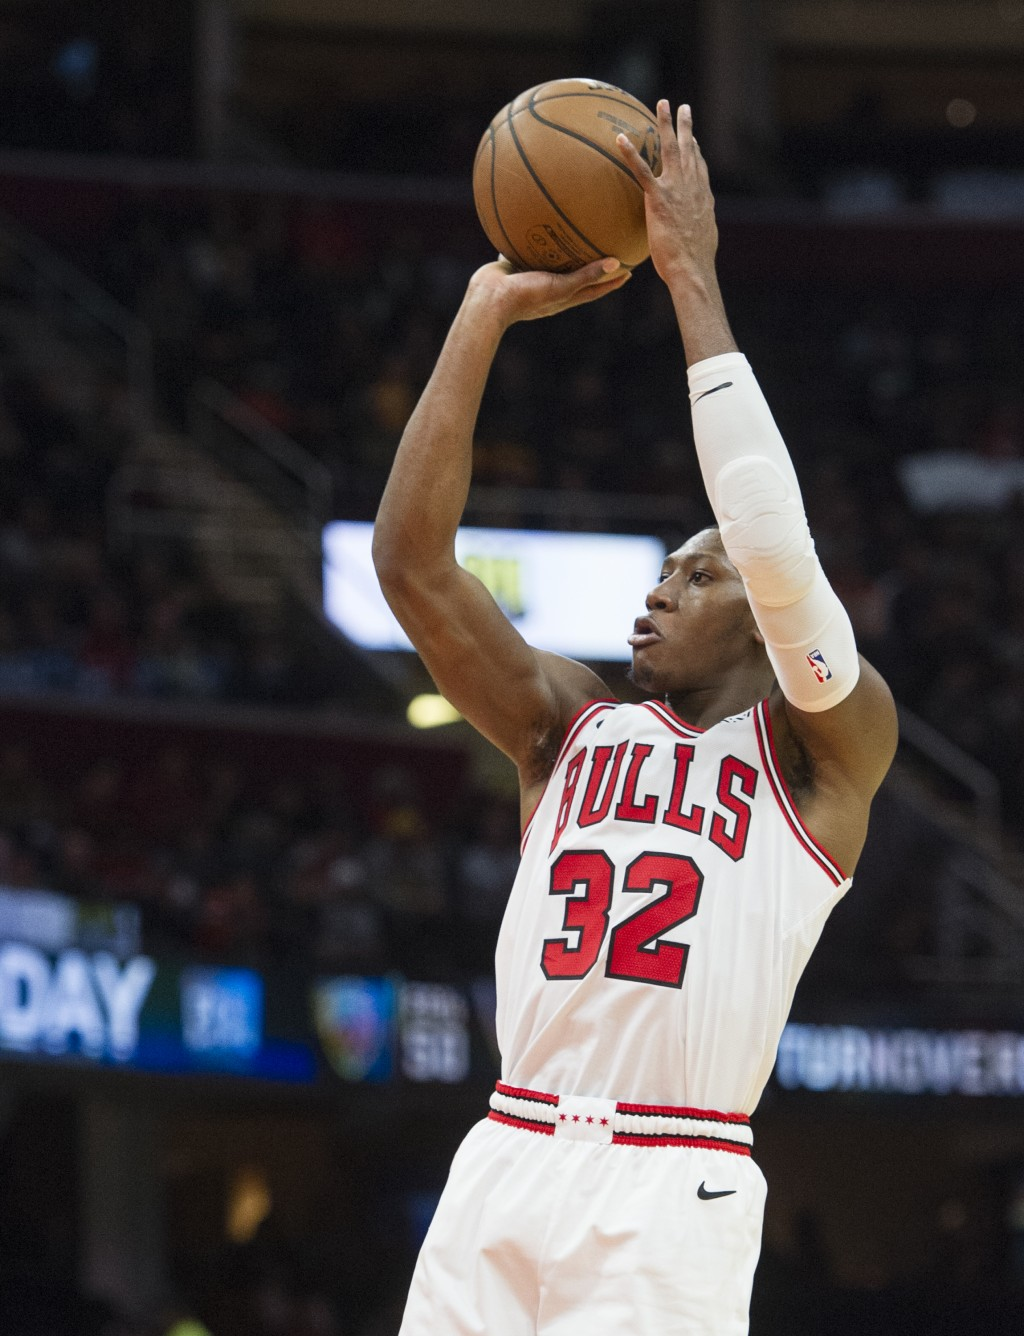 Chicago Bulls' Kris Dunn (32) shoots against the Cleveland Cavaliers during the first half of an NBA basketball game in Cleveland, Sunday, Dec. 23, 20